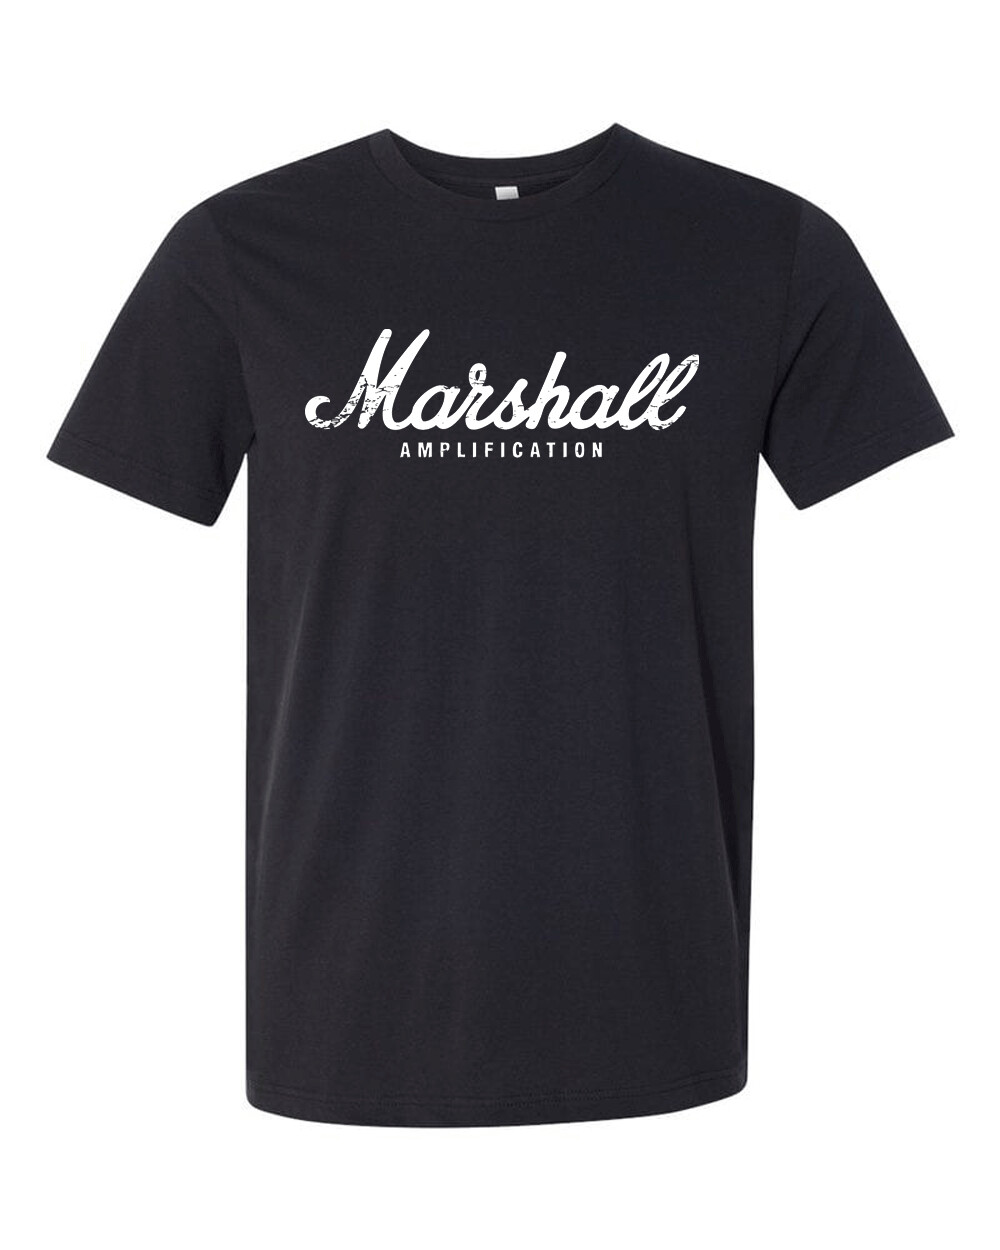 "Marshall Amplification White Distress Logo Bella Canvas T-shirt ""FREE SHIPPING"""